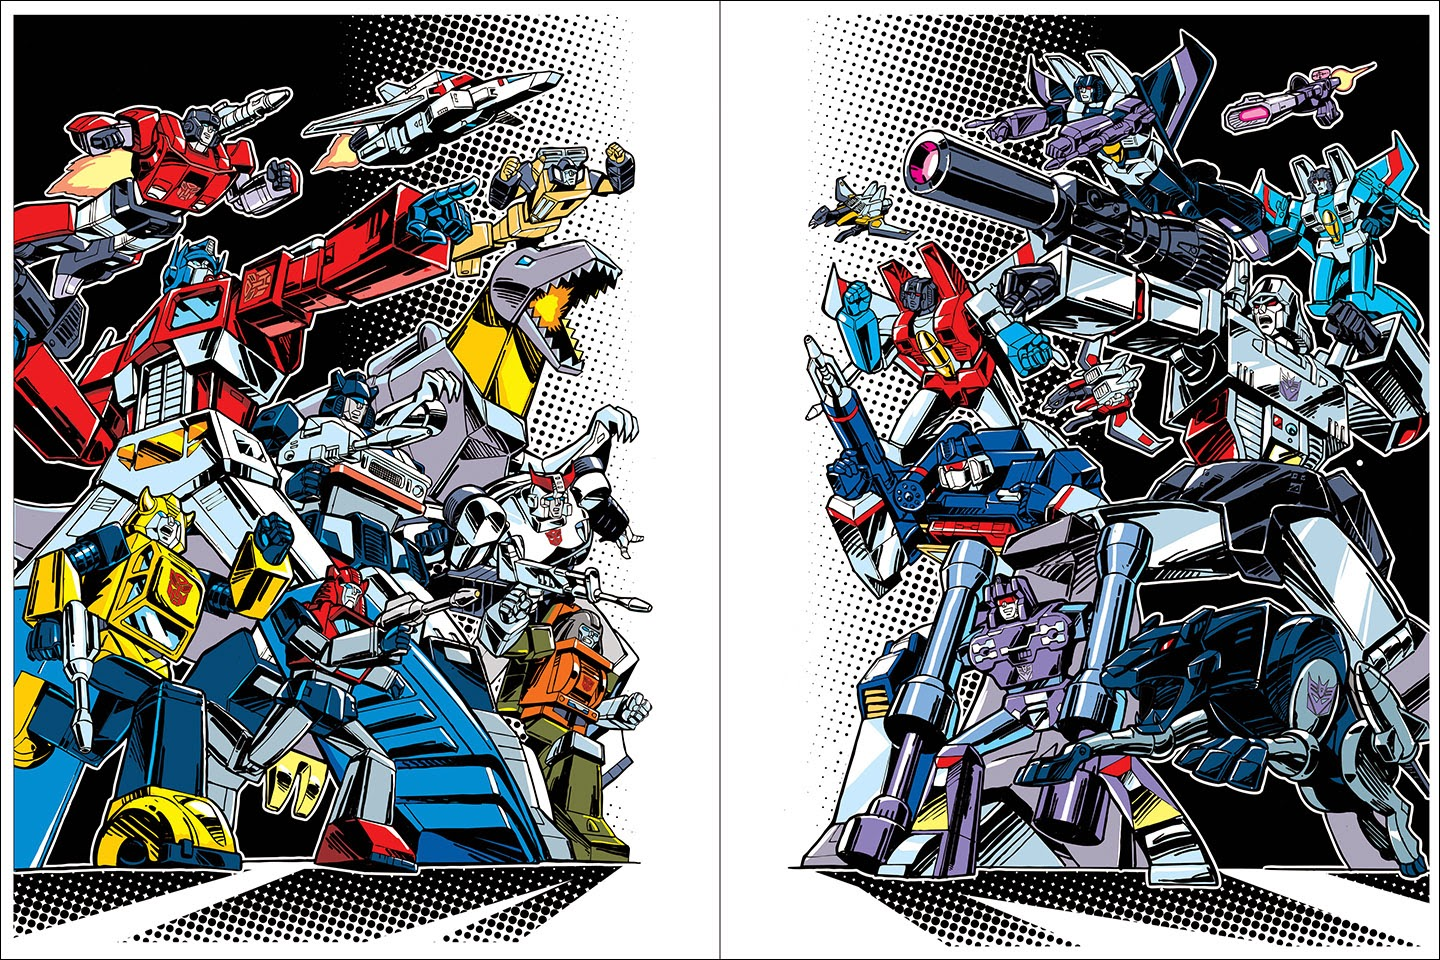 """Autobots"" and ""Decepticons"" Transformers 30th Anniversary Giclee Prints by Guido Guidi"